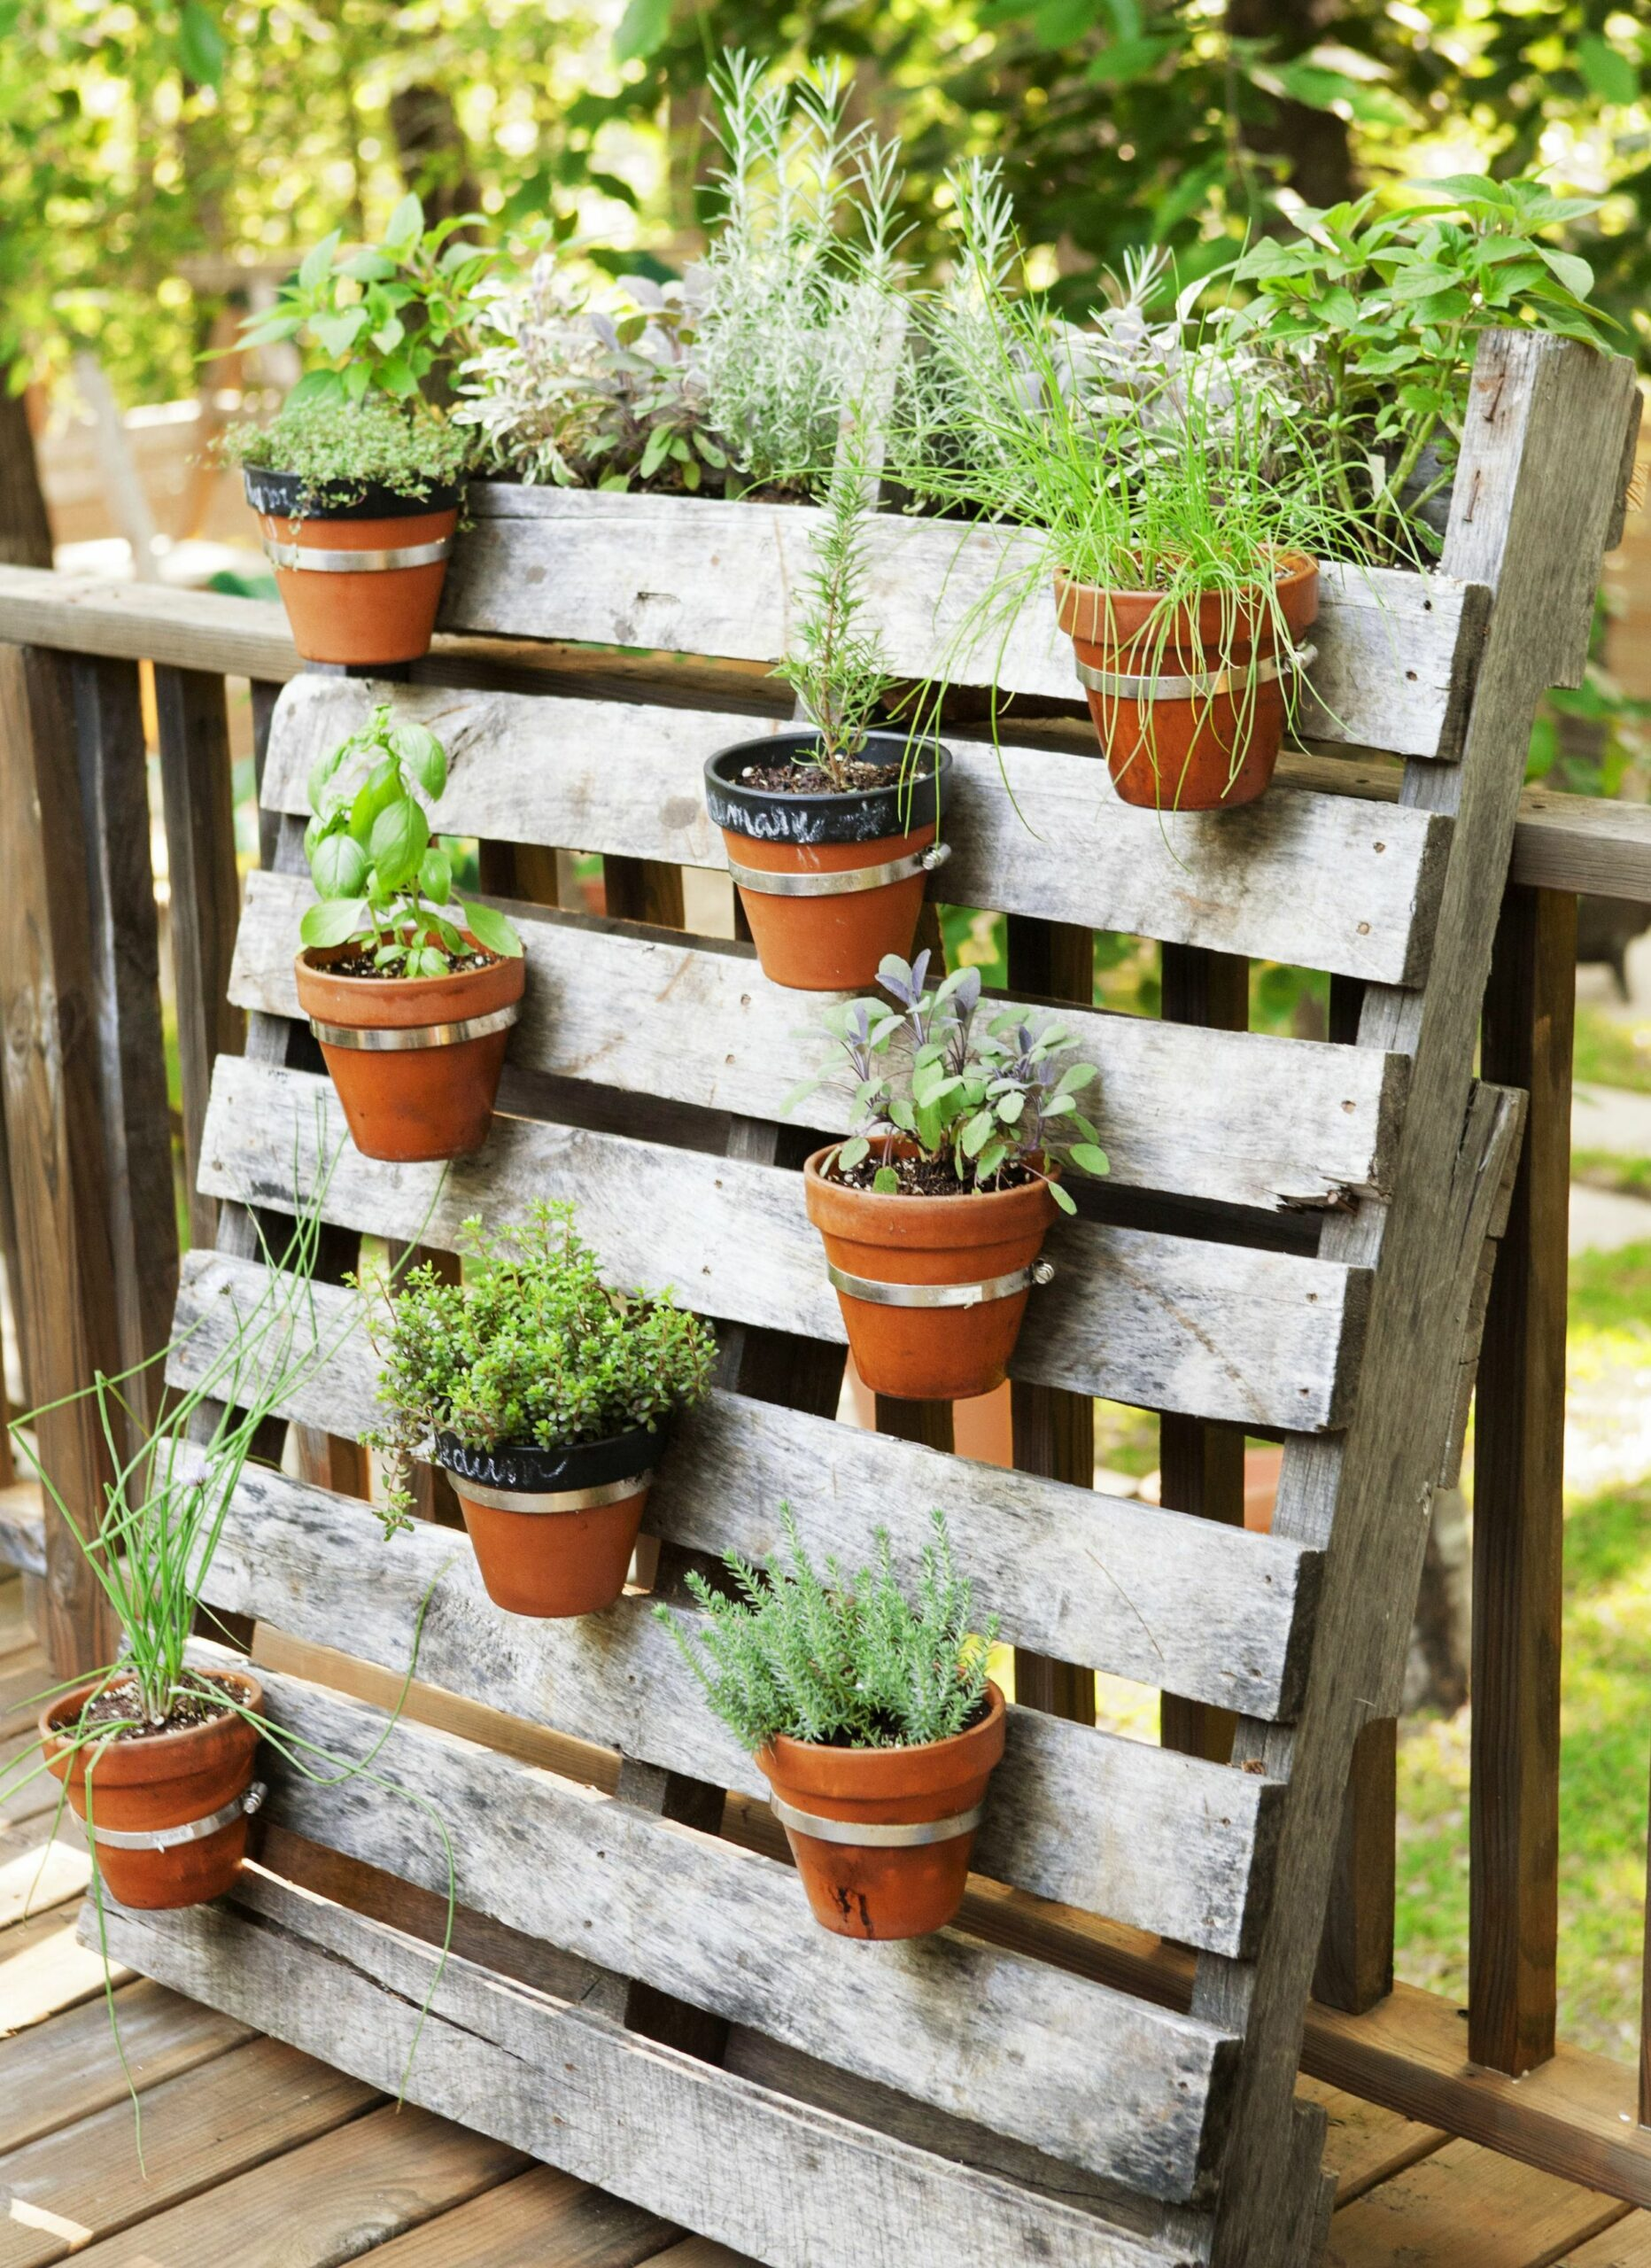 12+ Small Garden Ideas - Small Garden Designs